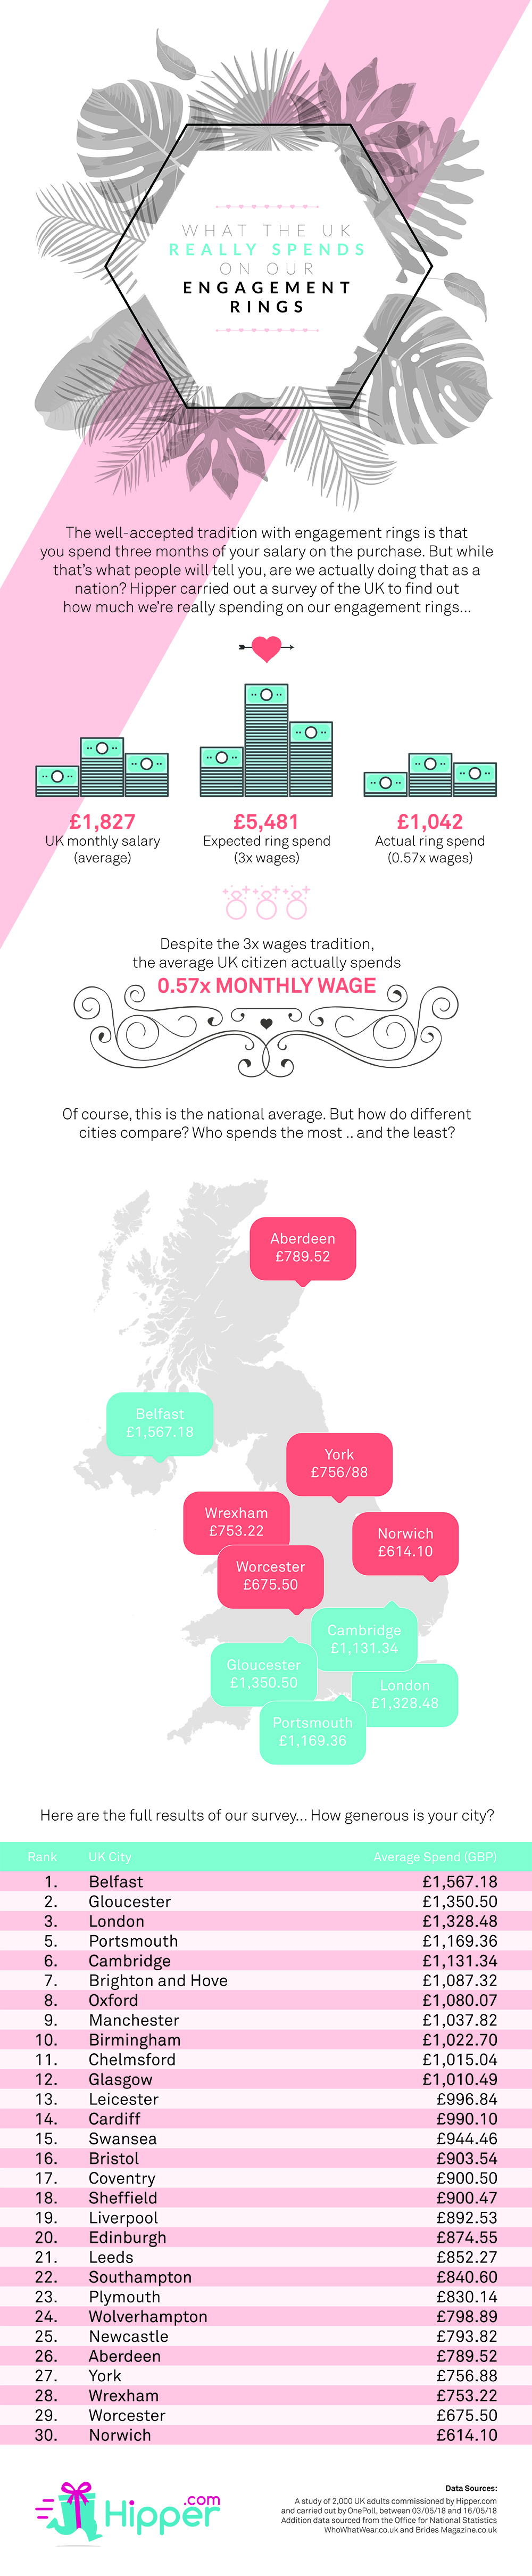 How Much Does the UK Really Spend on Engagement Rings?